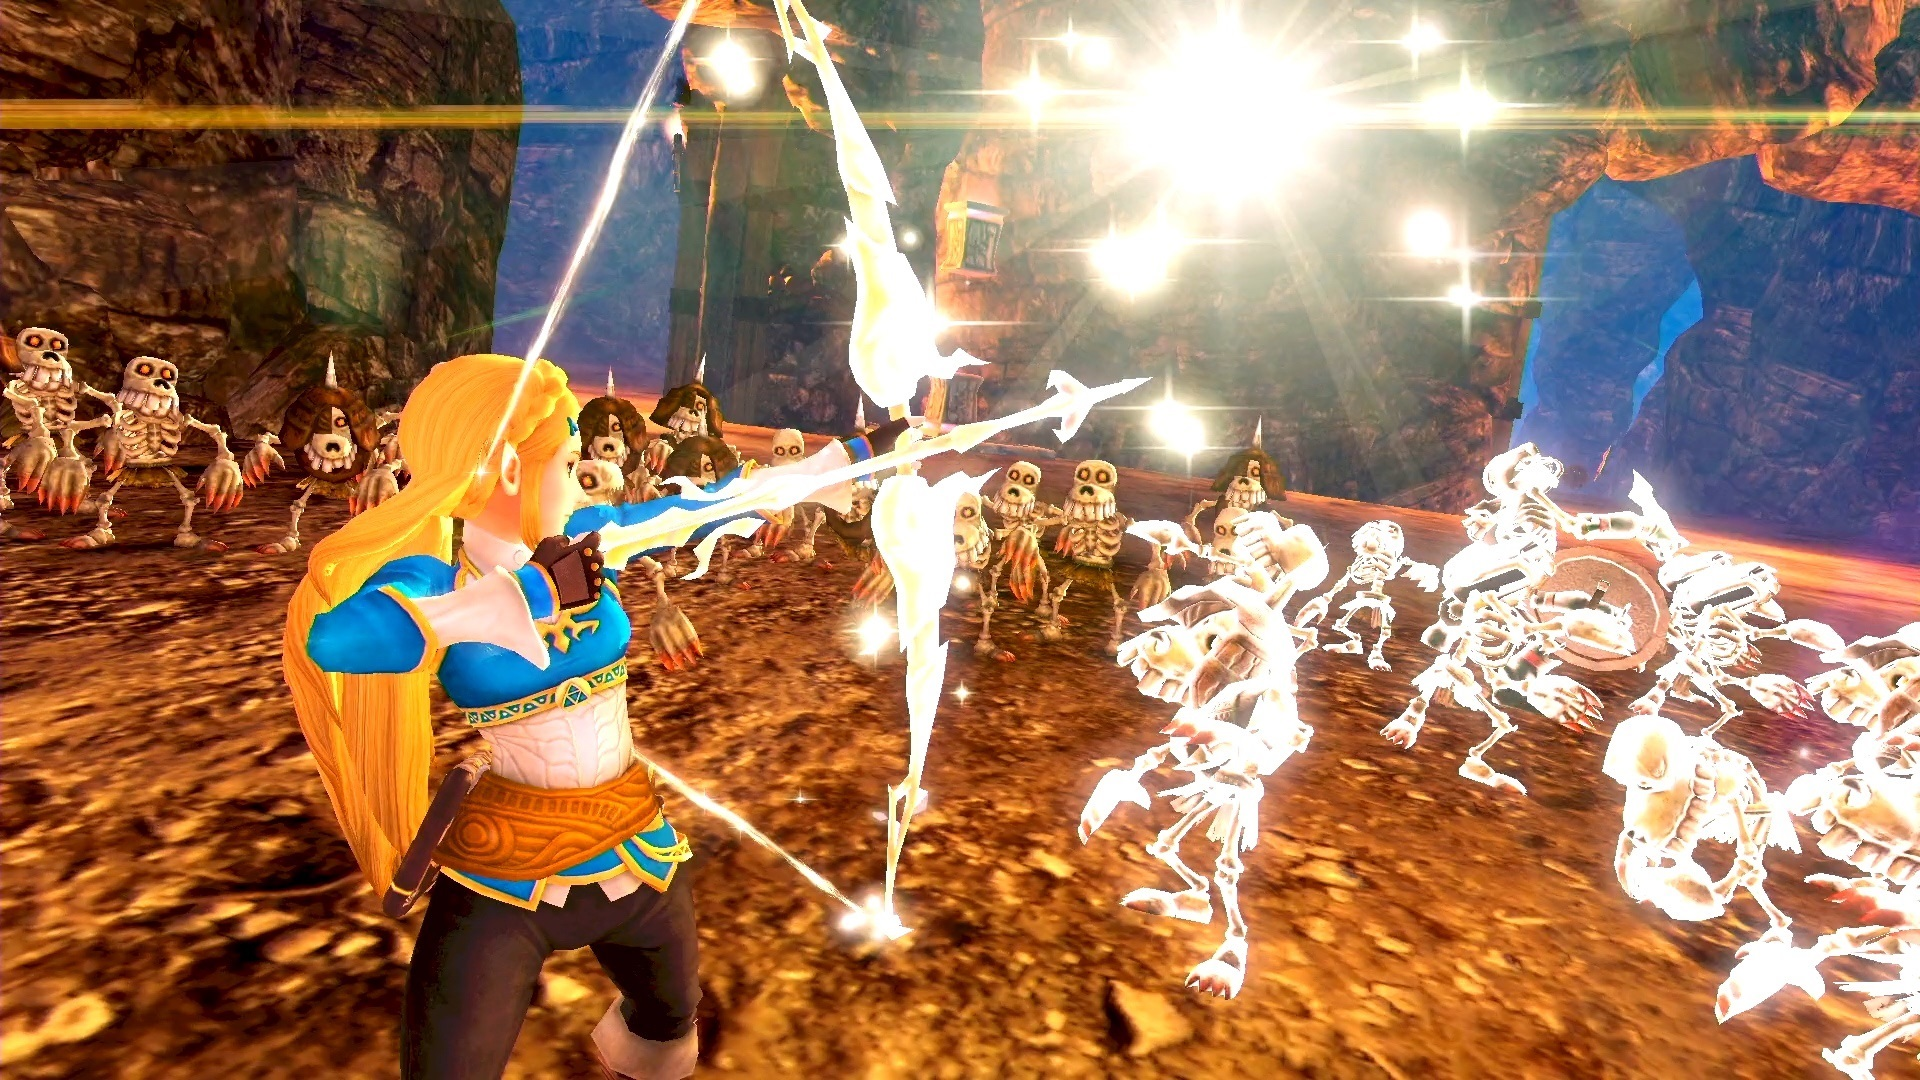 Hyrule Warriors Definitive Edition will release in March according to Nintendo Hong Kong screenshot